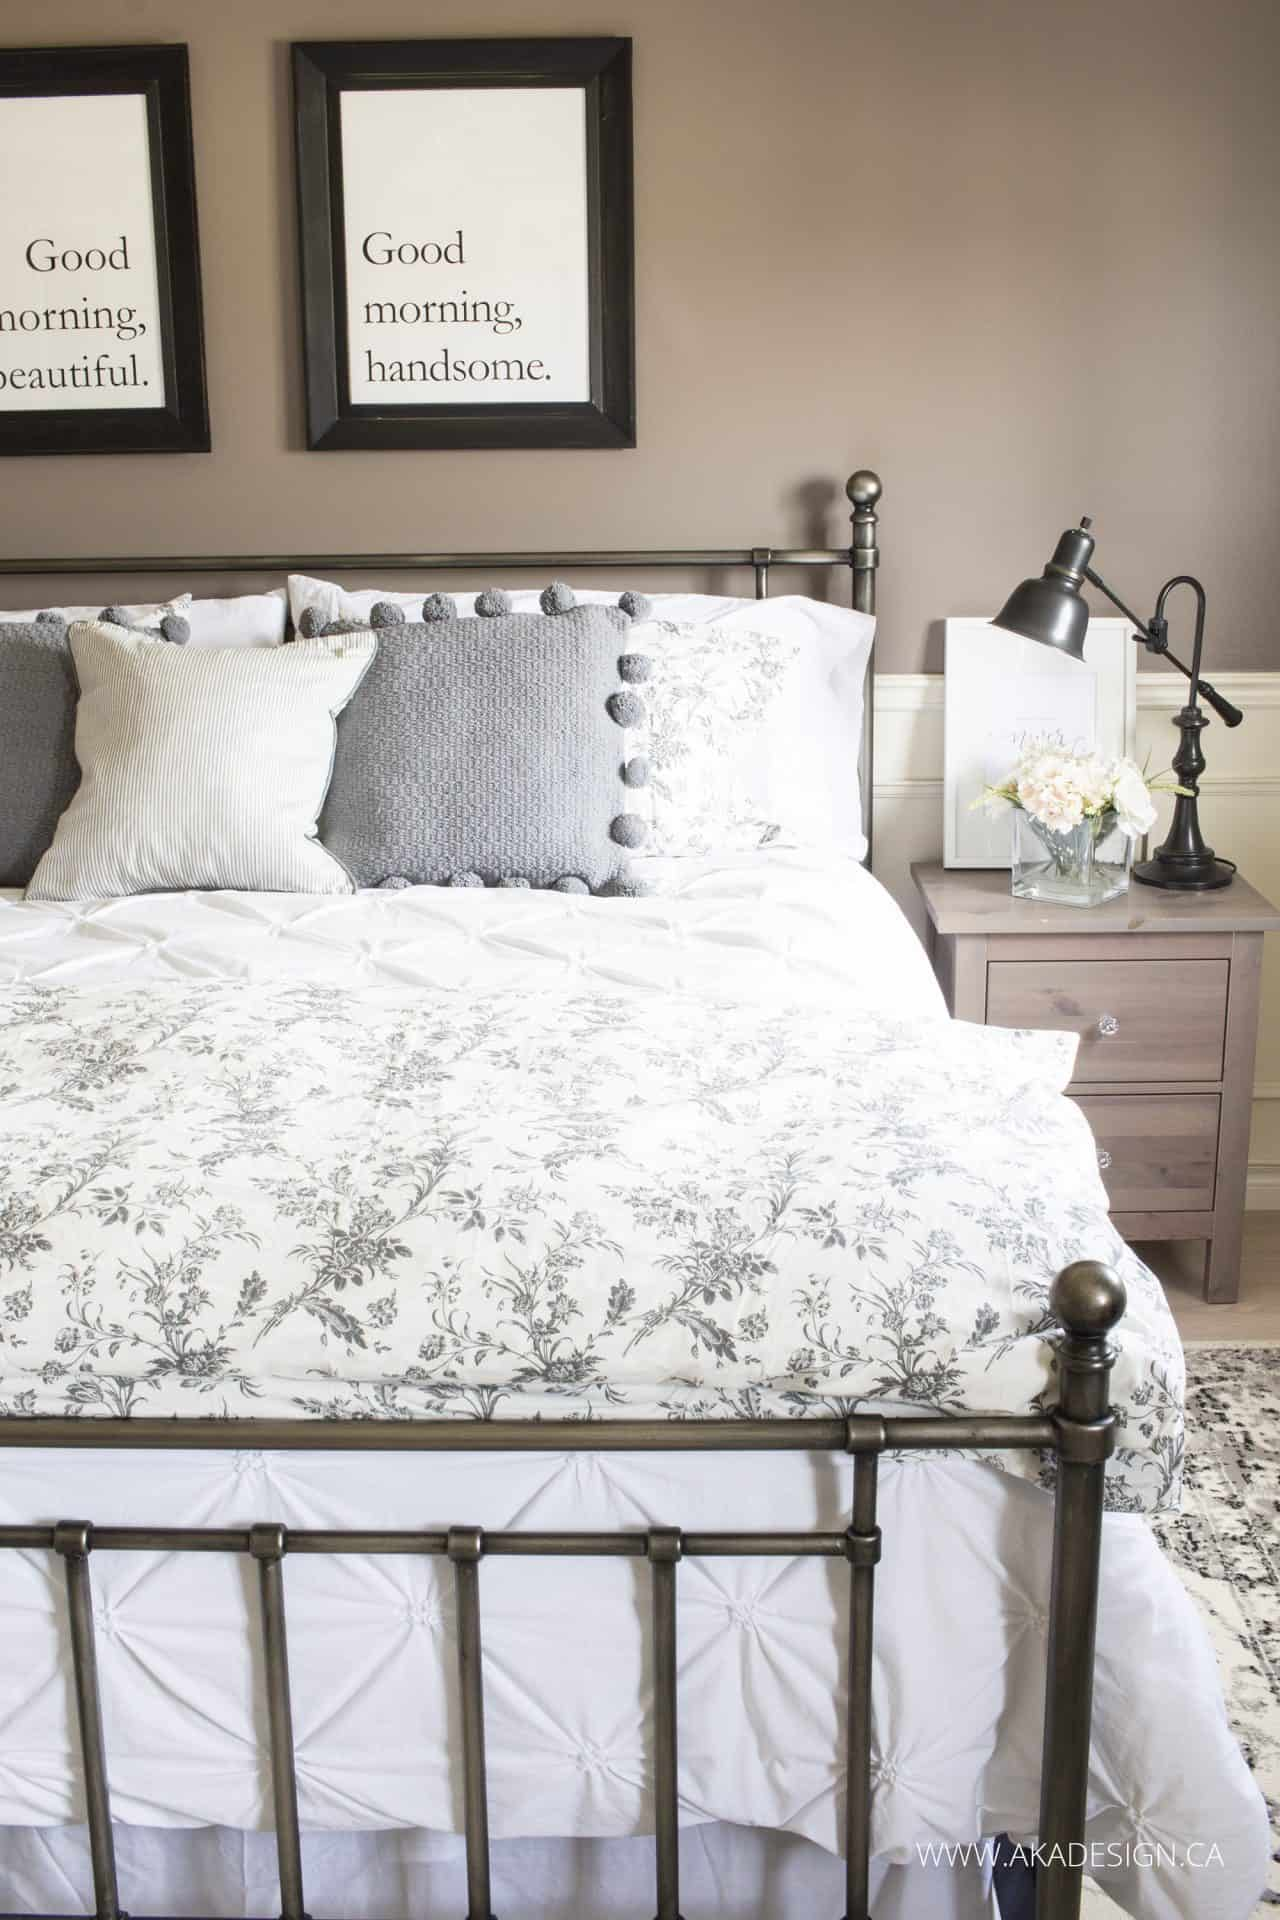 6 Farmhouse Industrial Headboards Under 500